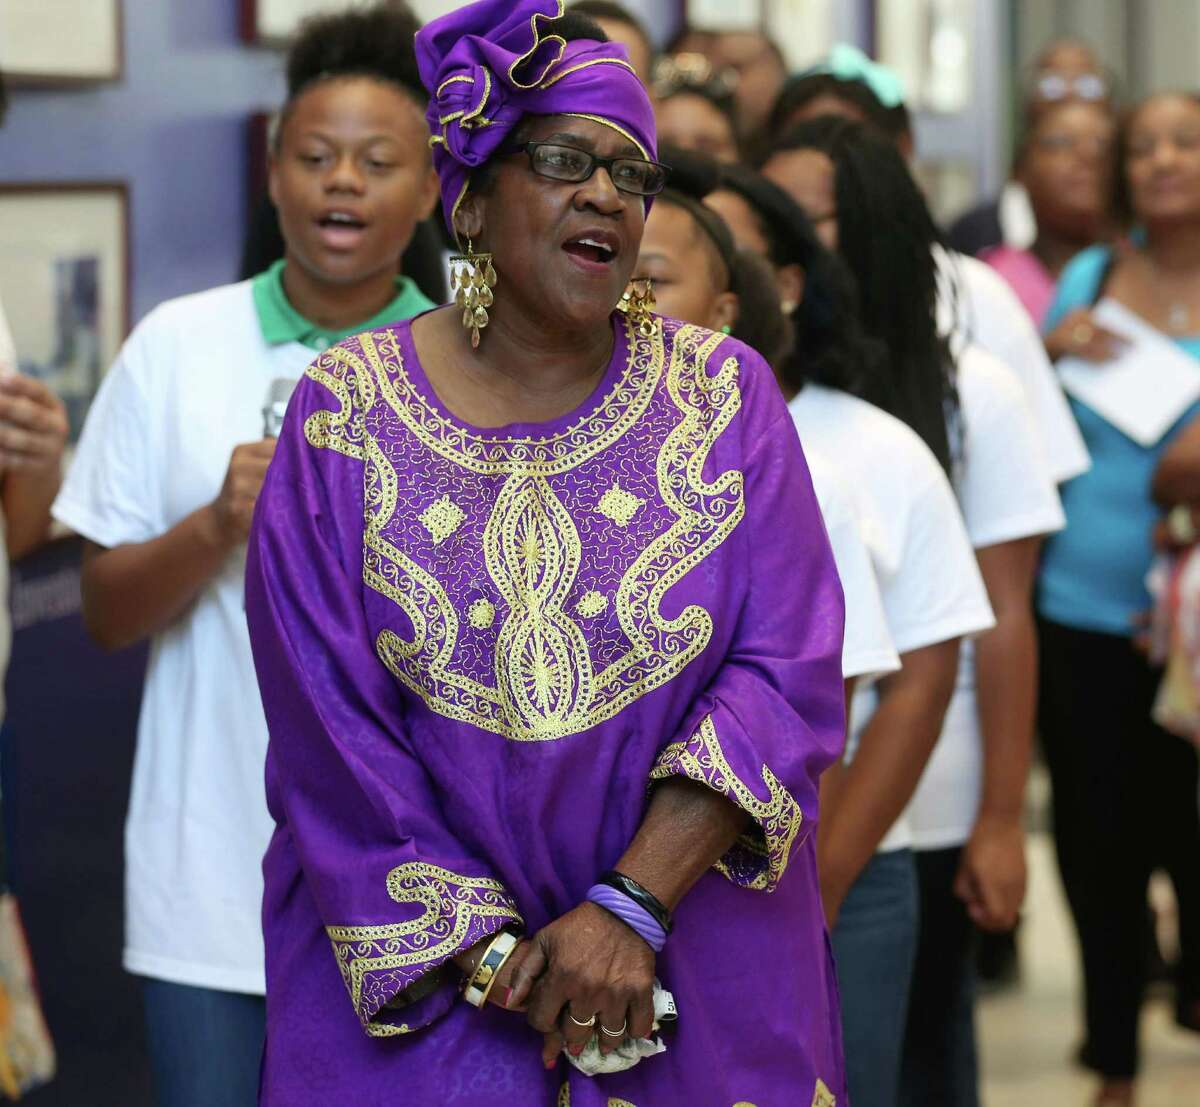 """Mamie King-Chalmers, center, sings """"We Shall Overcome"""" with members of the Community of Faith Youth Choir at an event celebrating her work as a civil rights activist, at the Children's Museum of Houston, Thursday, Aug. 6, 2015, in Houston. The event corresponded with the 50th anniversary of the Voting Rights Act of 1965."""